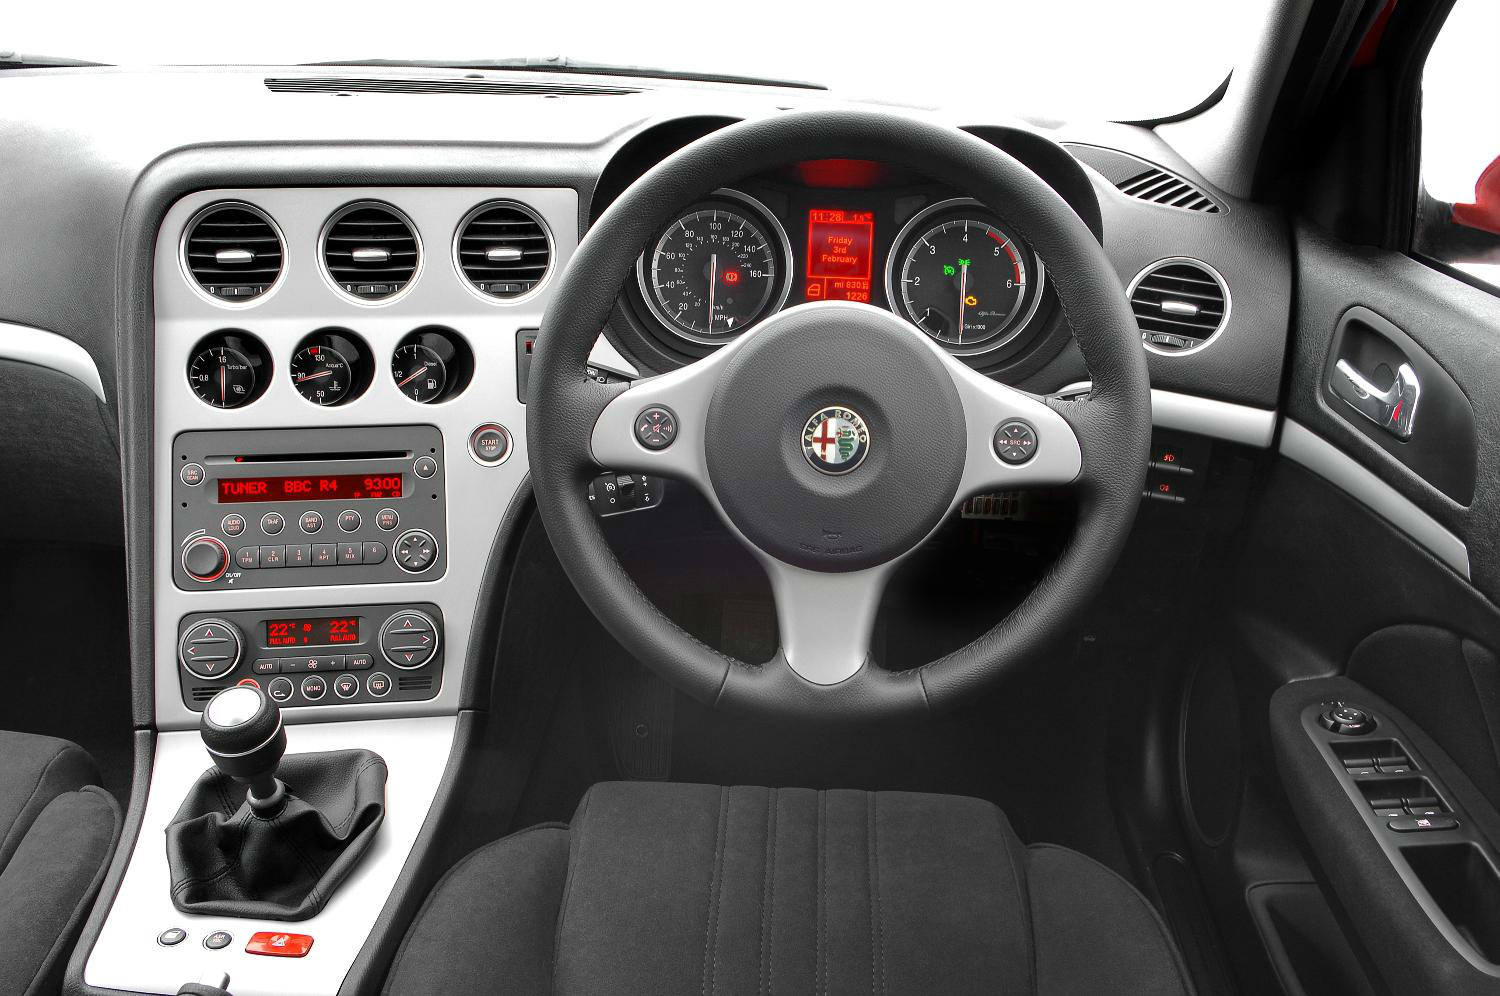 image of a alfa romeo 159 car interior